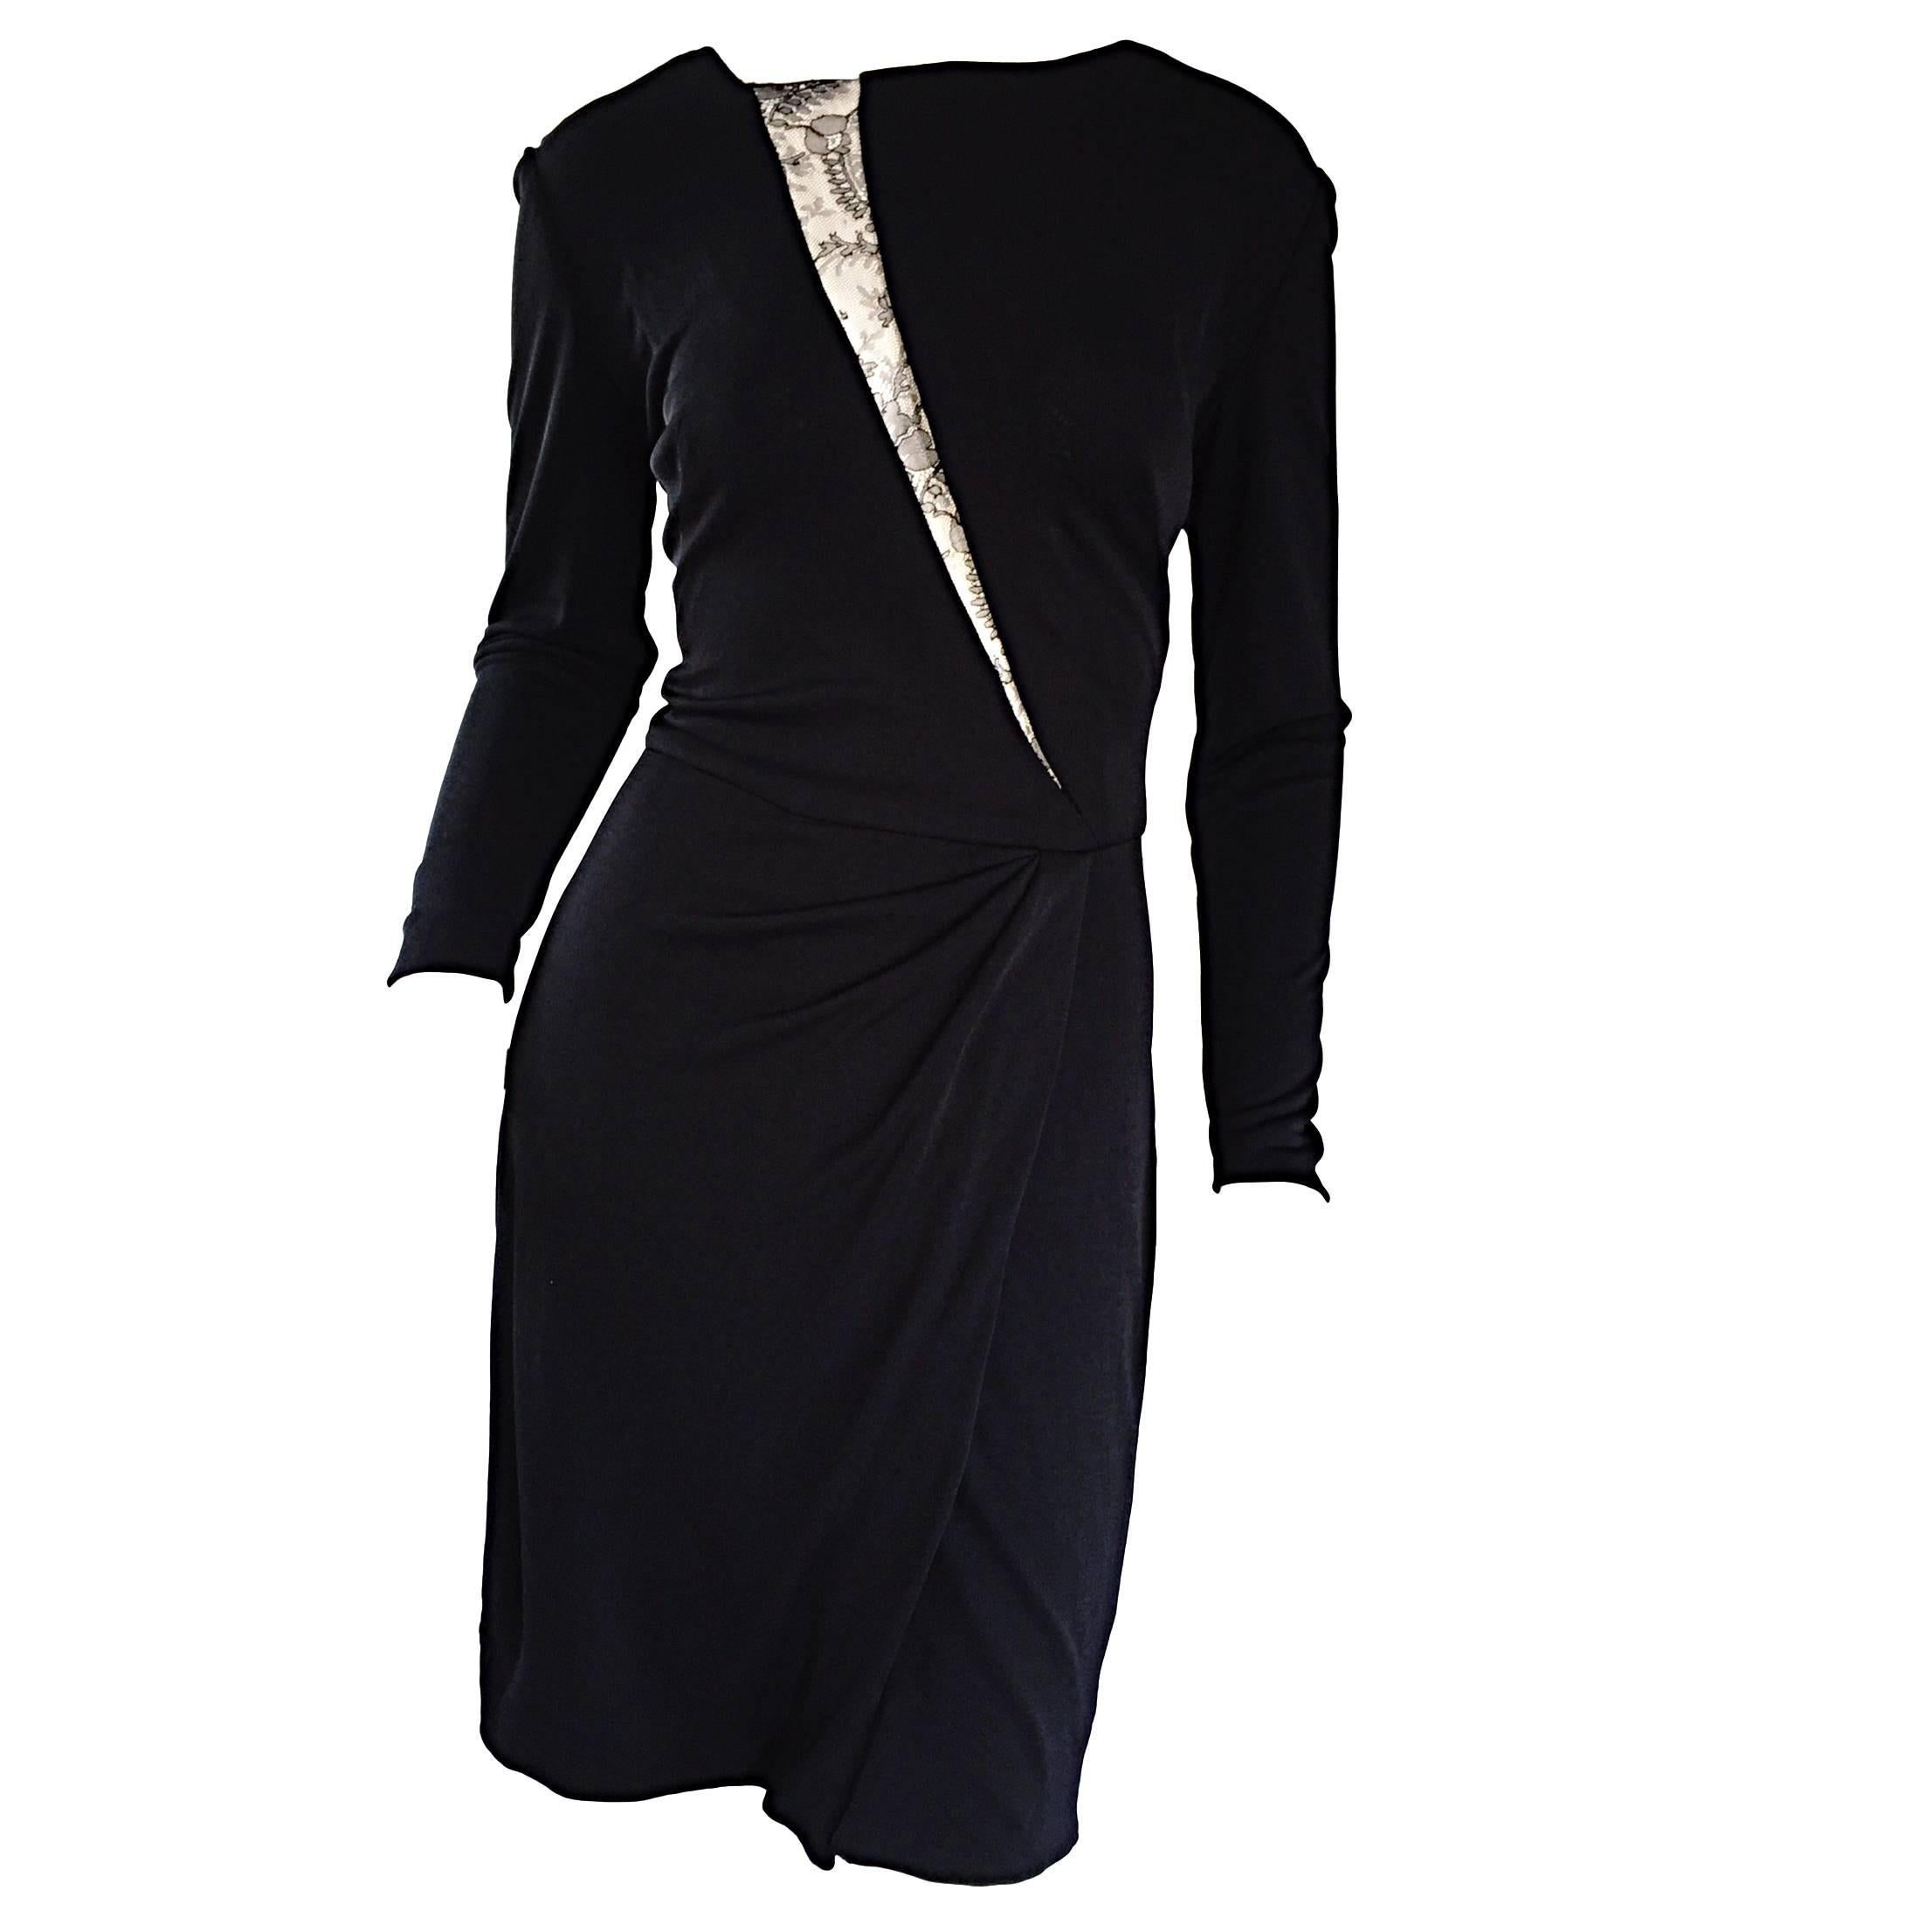 Beautiful Vintage Vicky Tiel Couture Black Jersey Ruched Dress w/ Lace Cut - Out